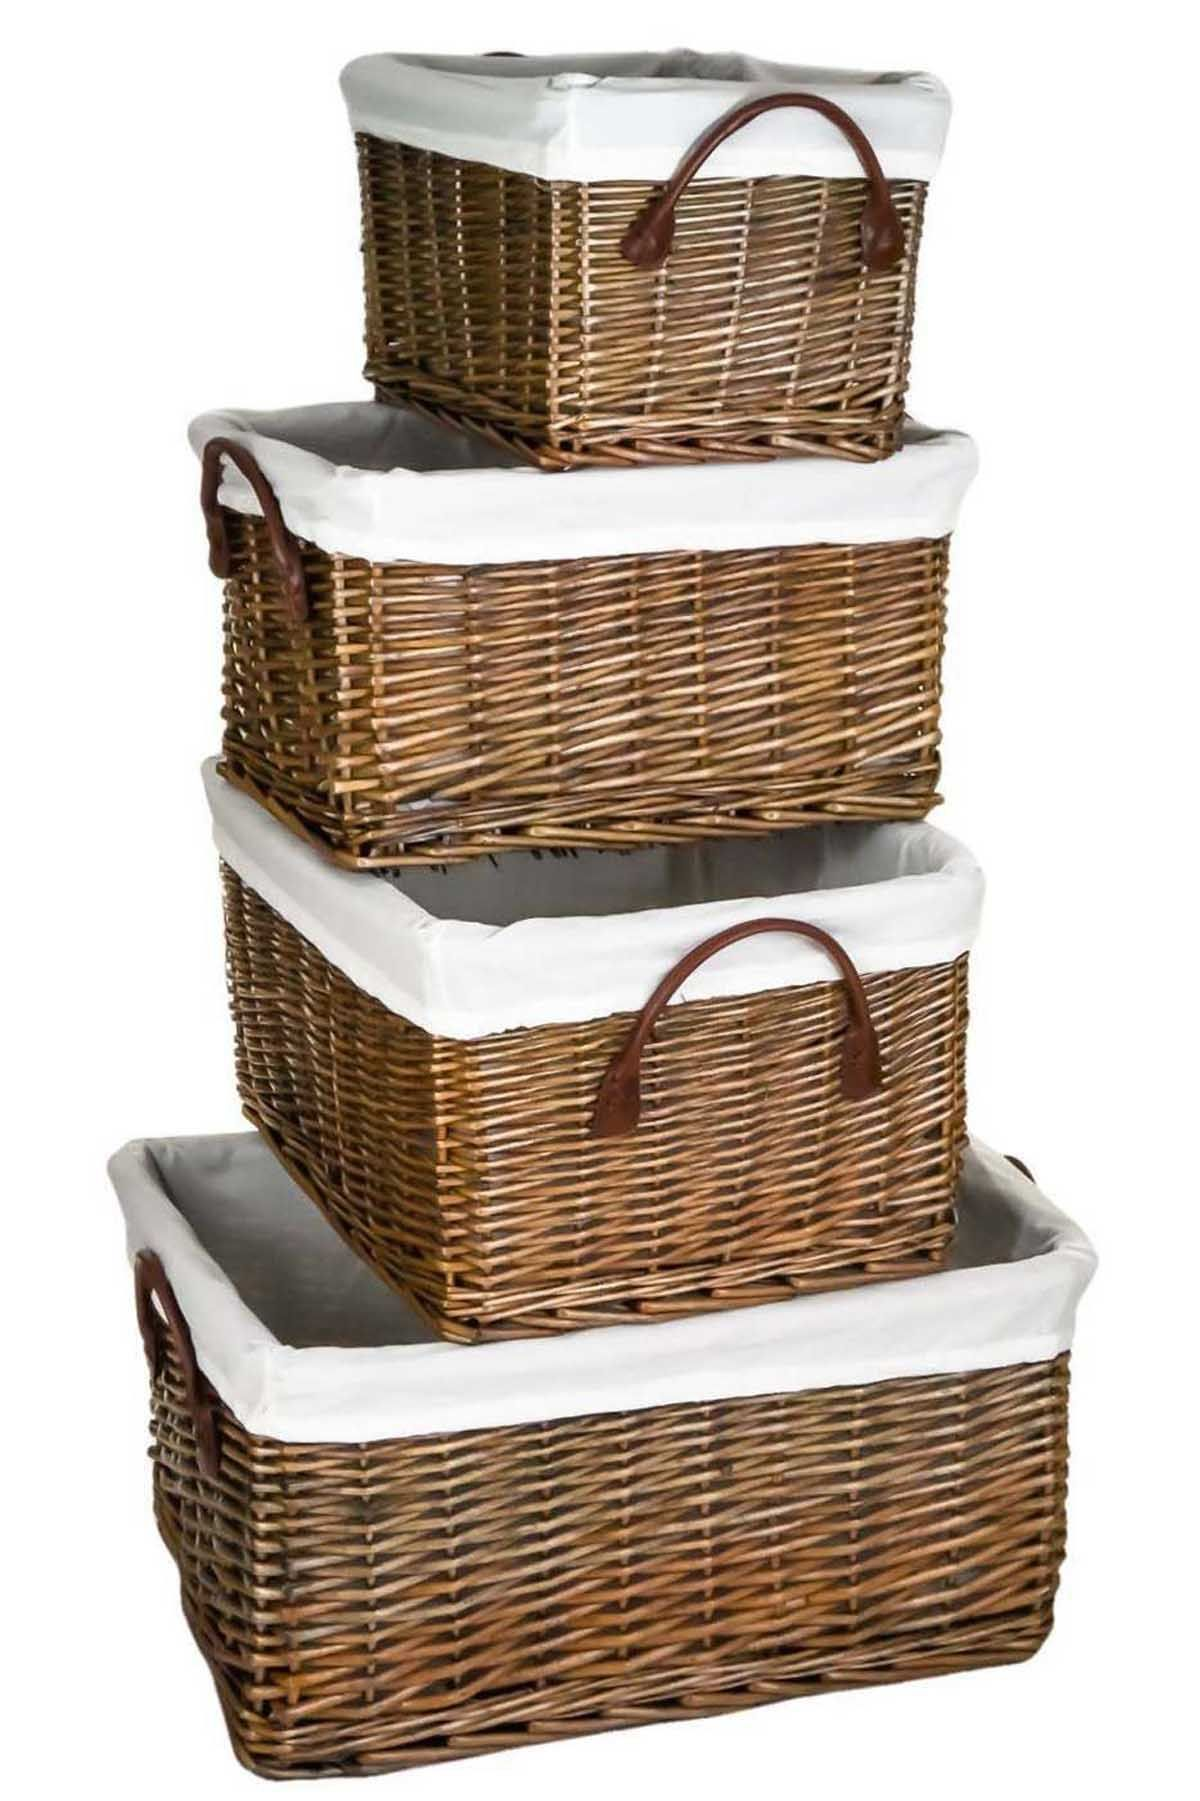 Antique Brown Giant Rectangular Wicker Willow Hamper